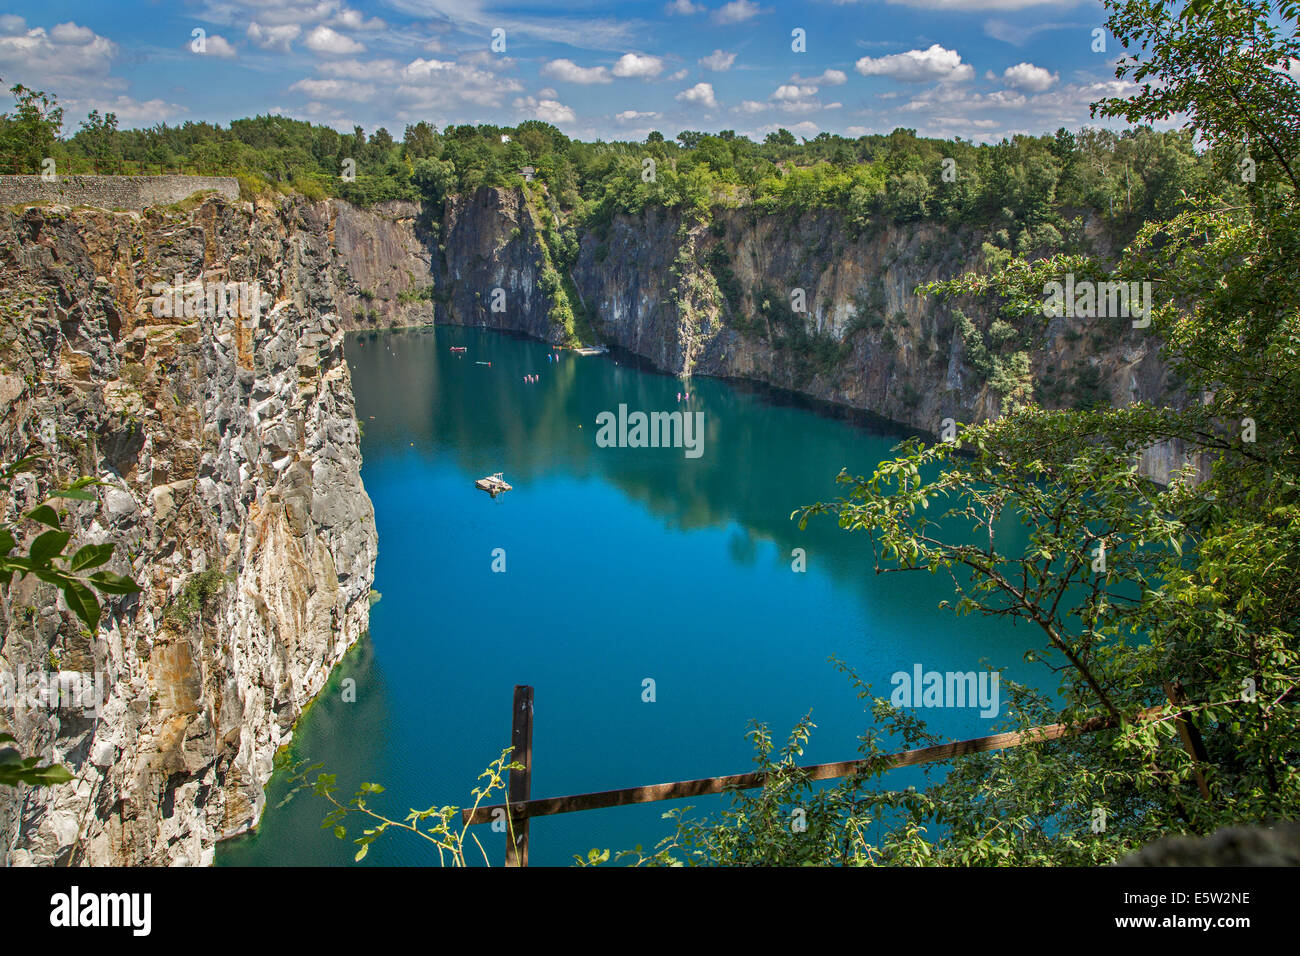 Lake in old porphyry quarry Carrière De Cosyns, now a dive spot in Belgium, Lessines / Lessen, Hainaut, Belgium - Stock Image